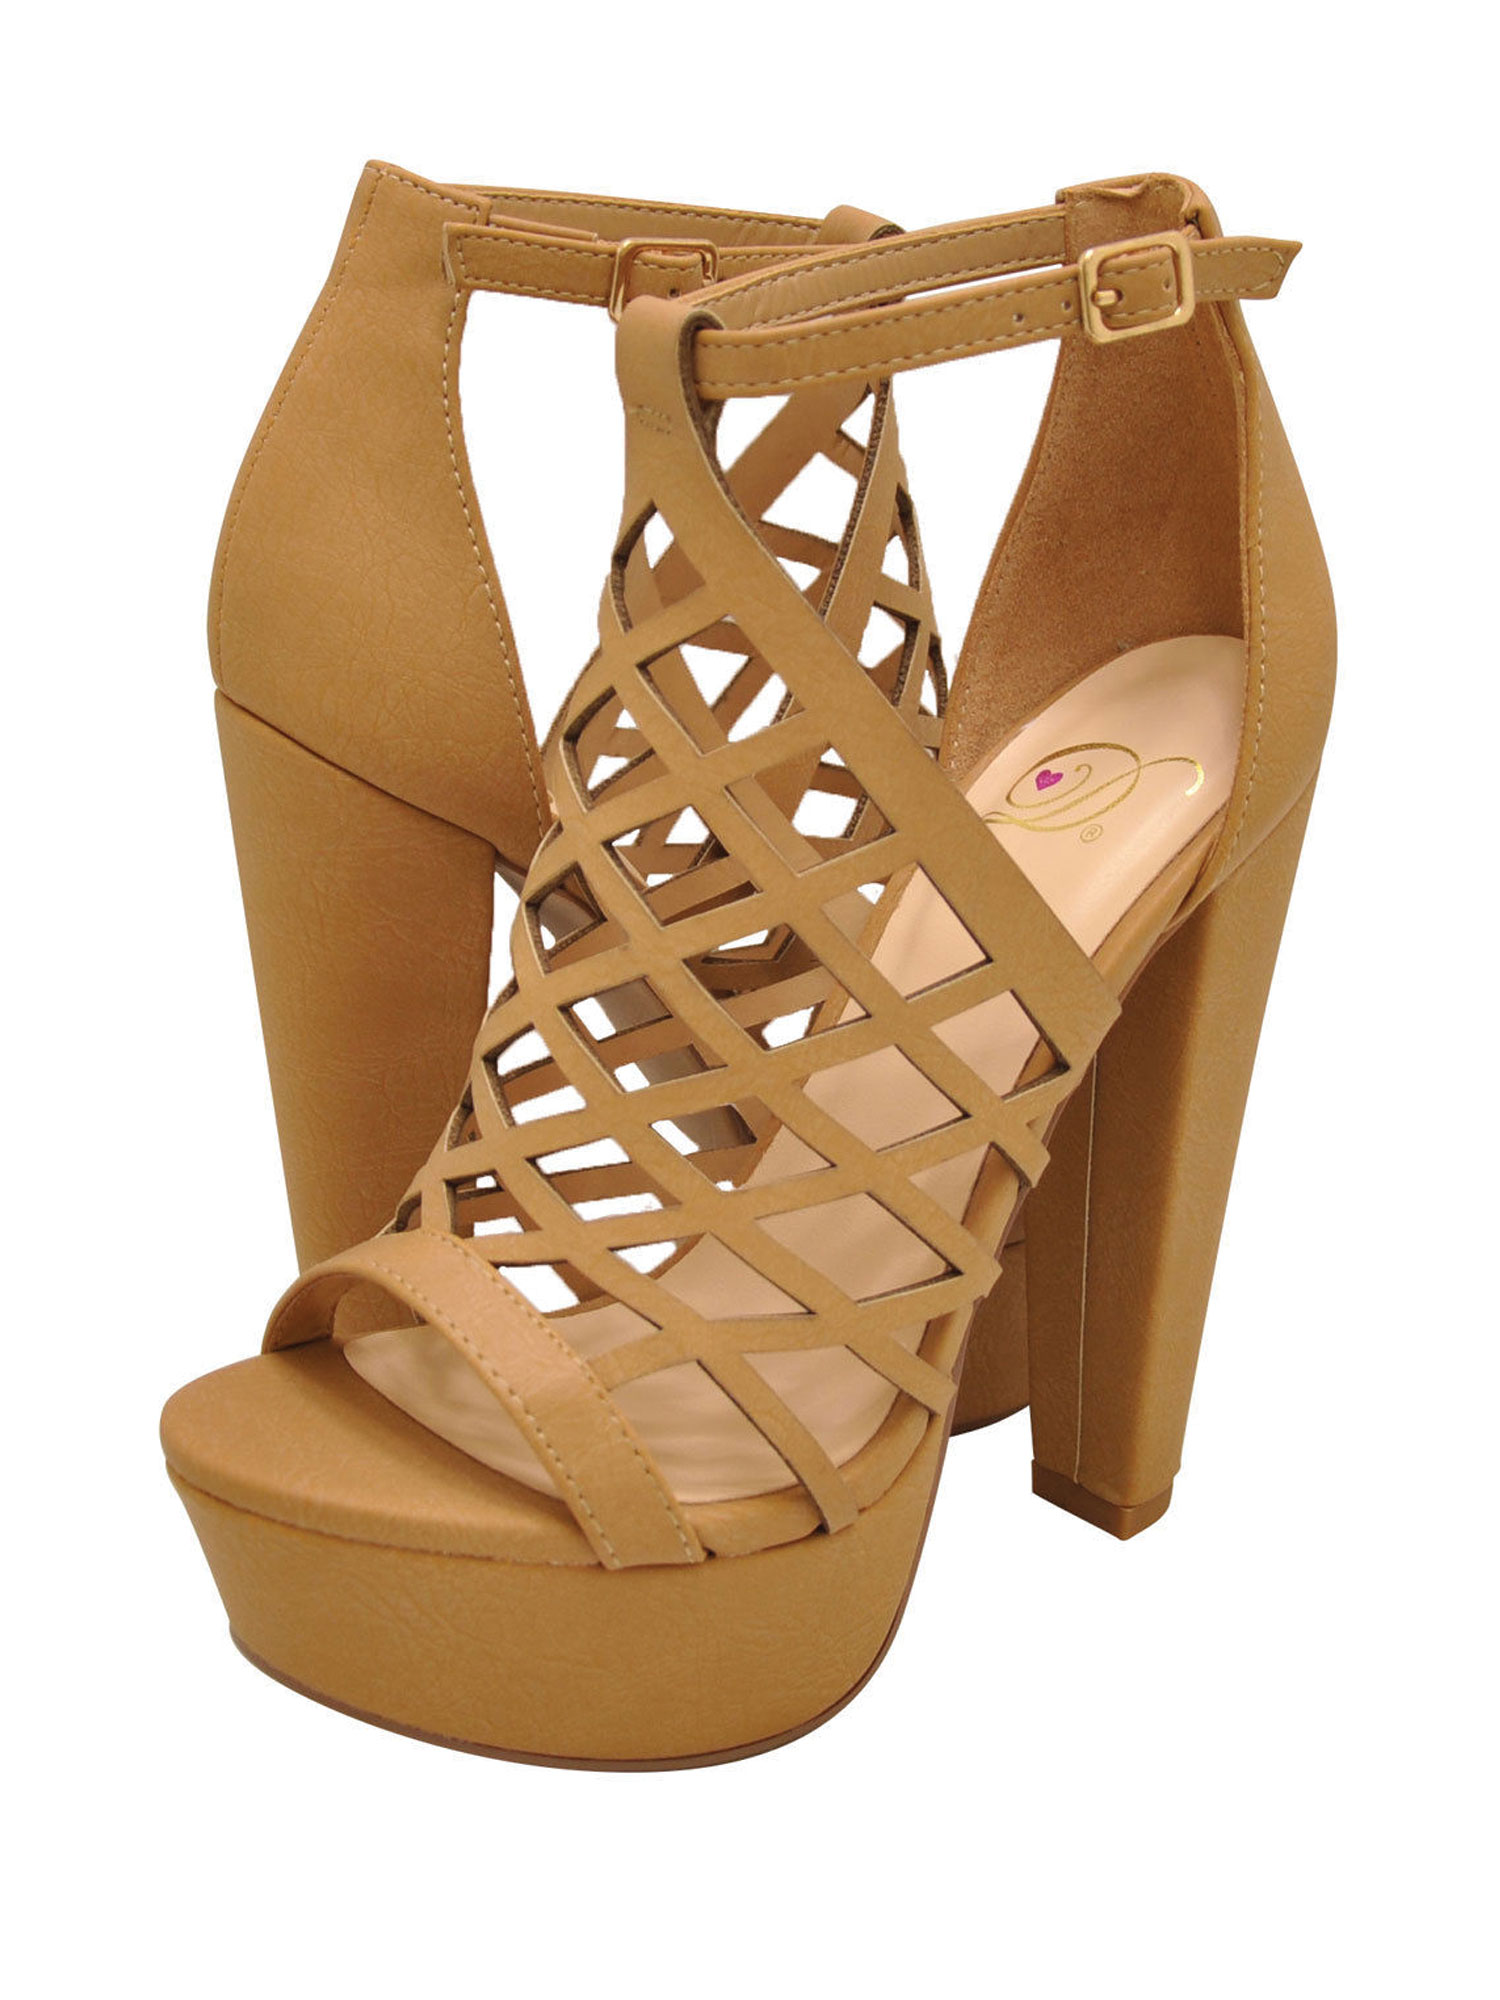 Delicious EXIT-S Women's Caged Platform Open Toe High Heel